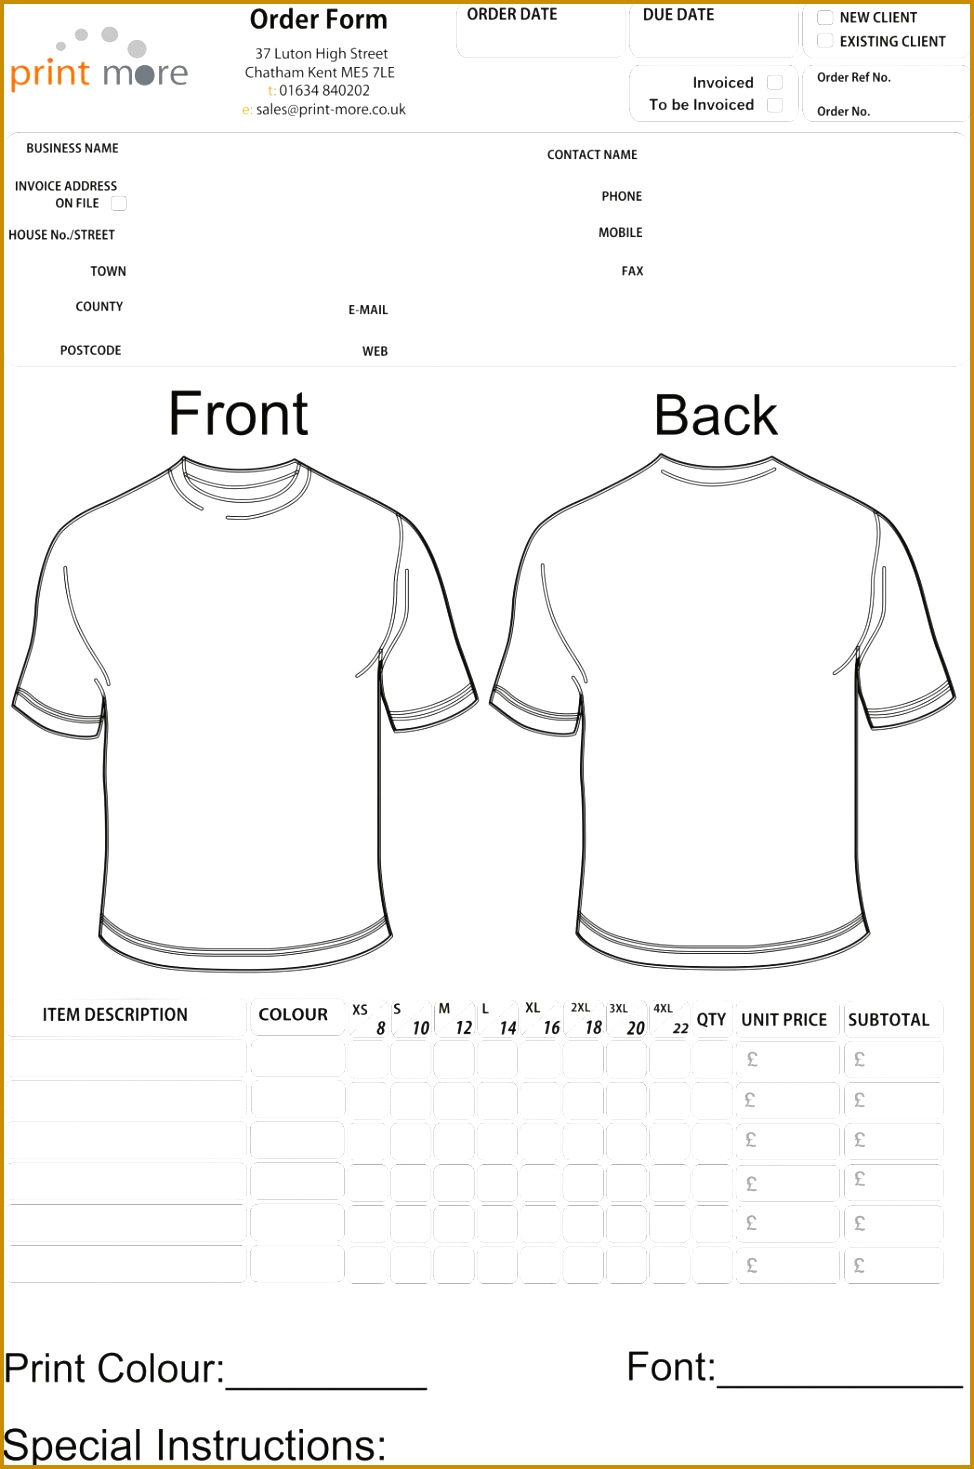 7 family reunion t shirt order form template fabtemplatez. Black Bedroom Furniture Sets. Home Design Ideas